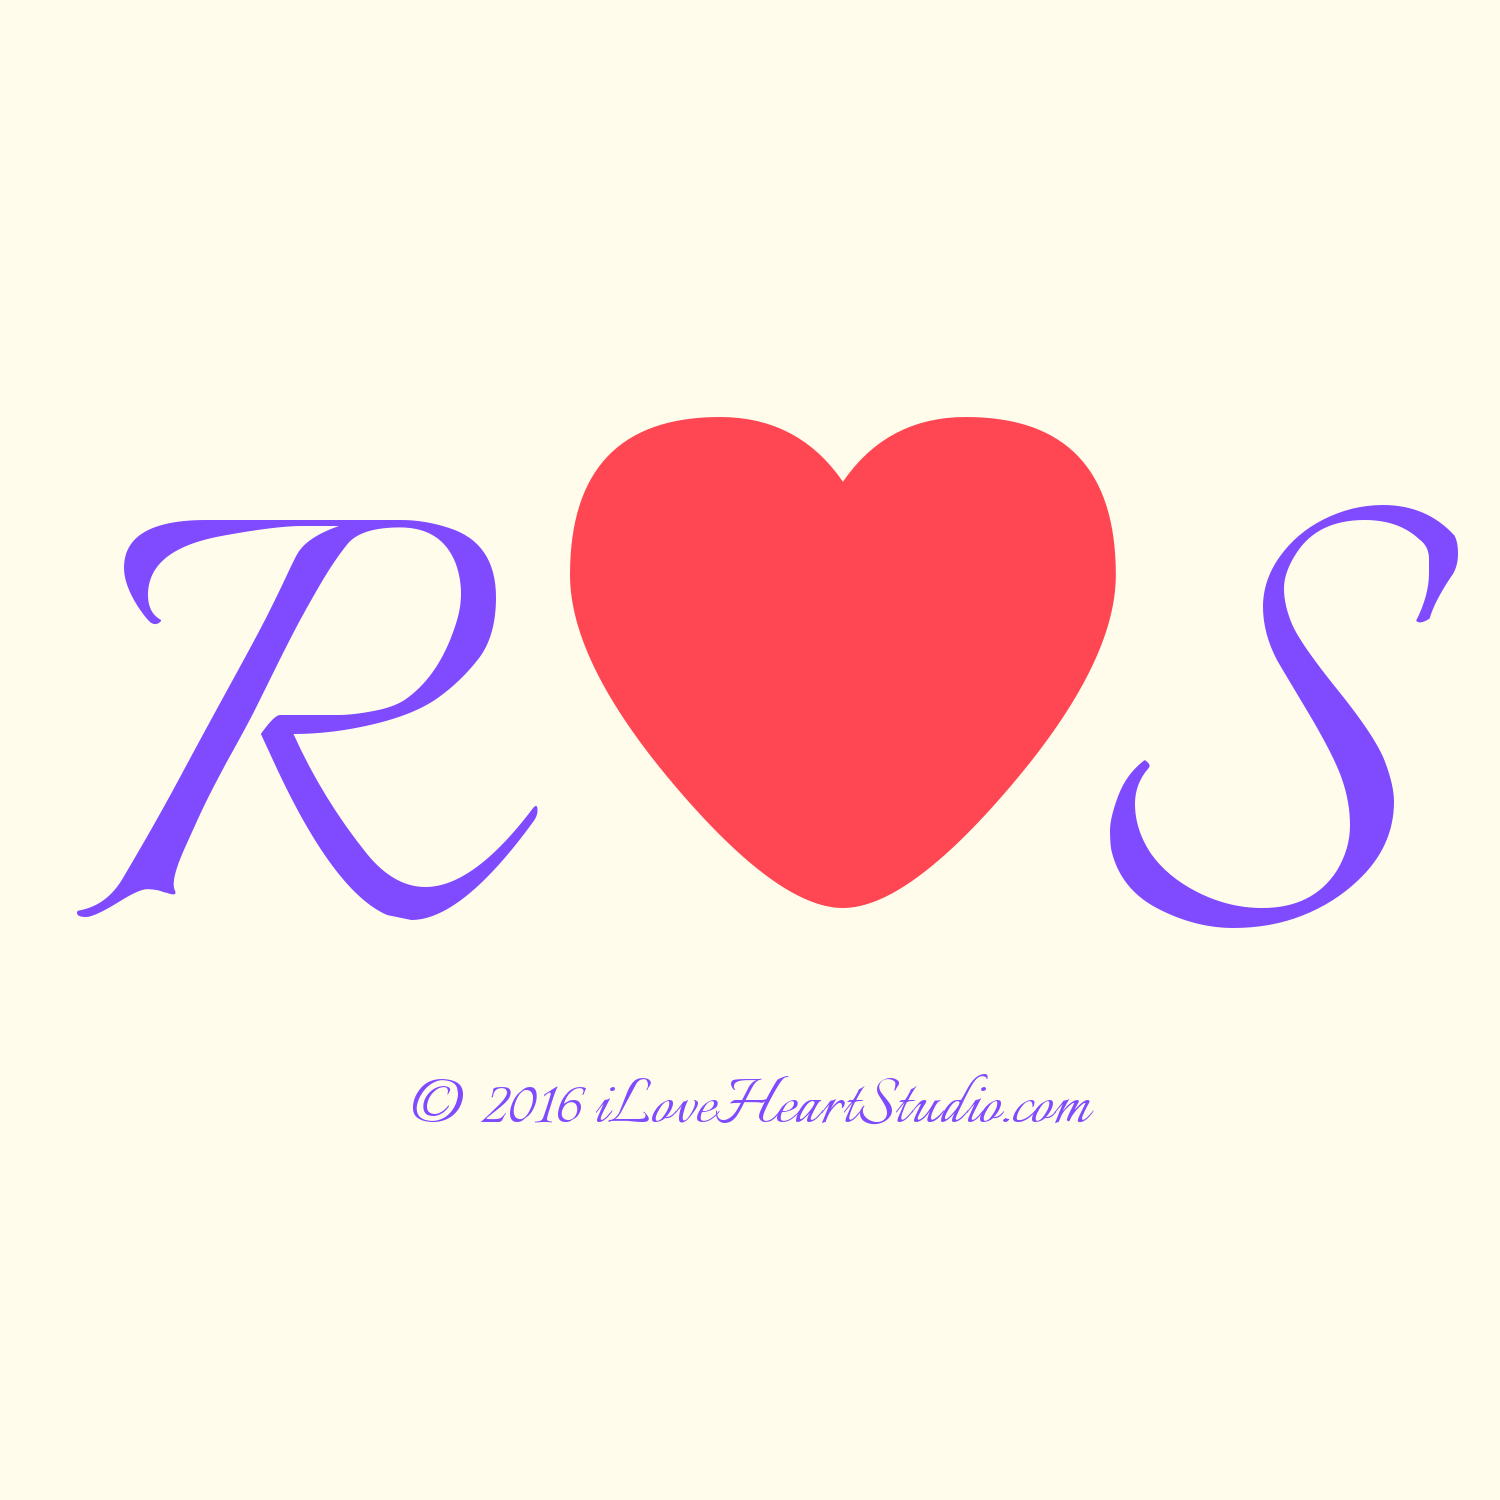 R Love Heart S Design On T Shirt Poster Mug And Many